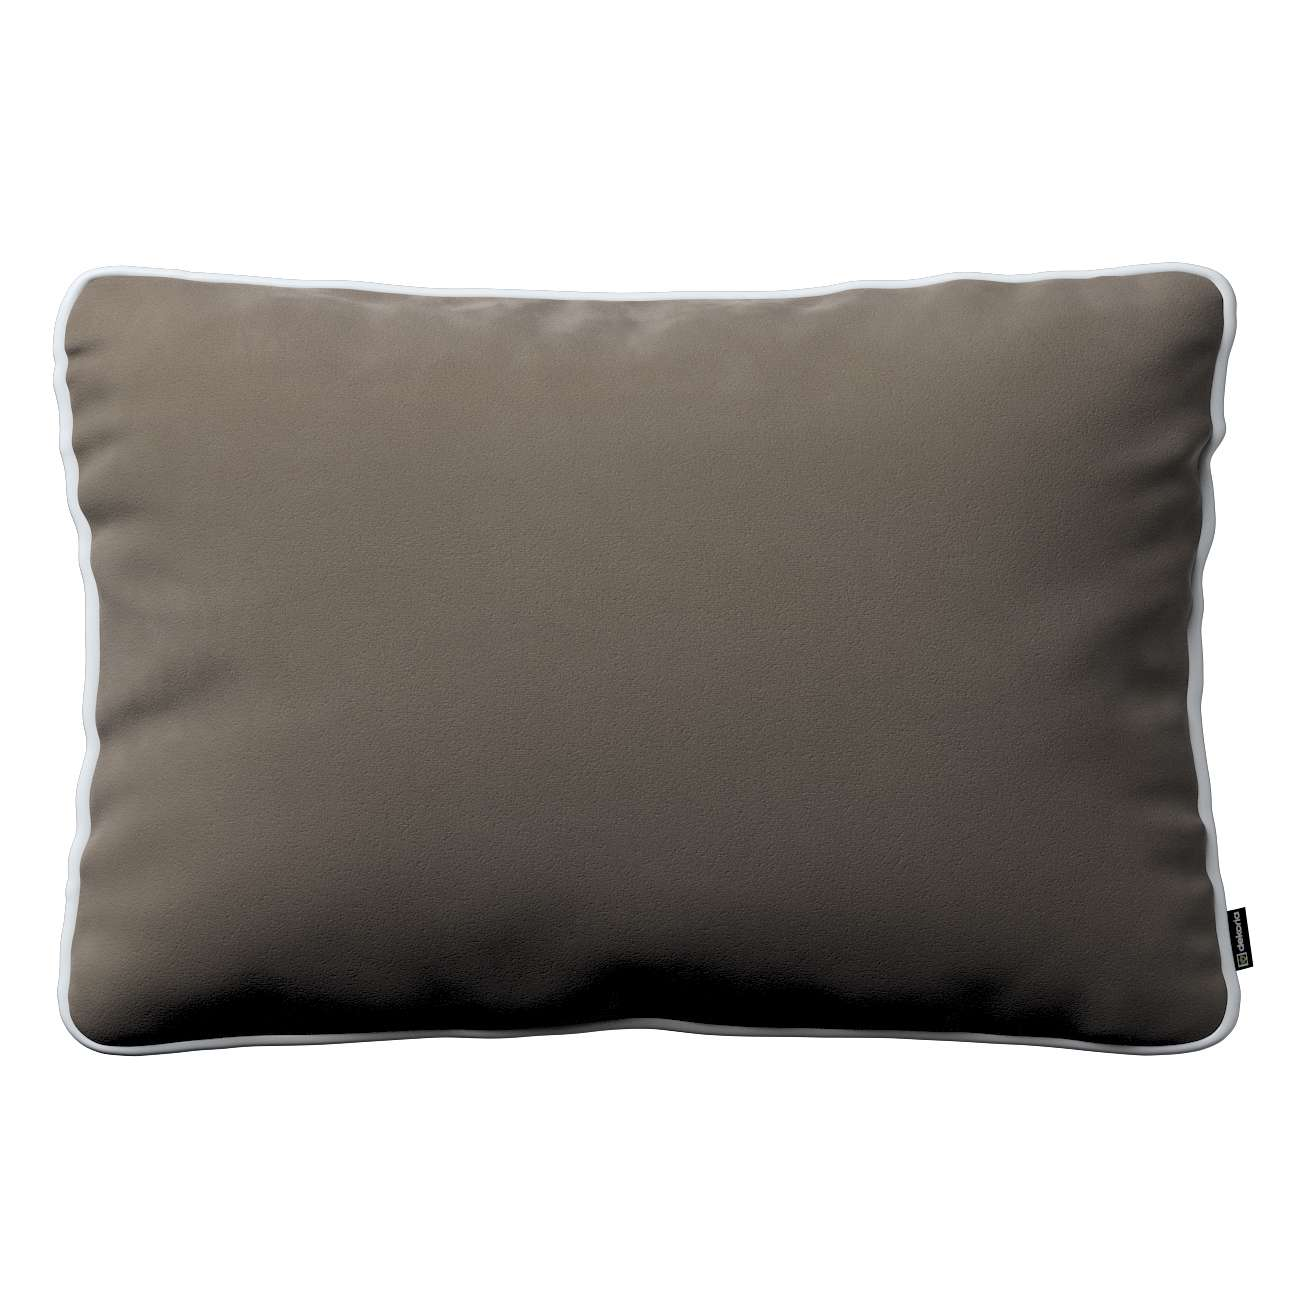 Laura rectangular velvet cushion cover with piping in collection Velvet, fabric: 704-19